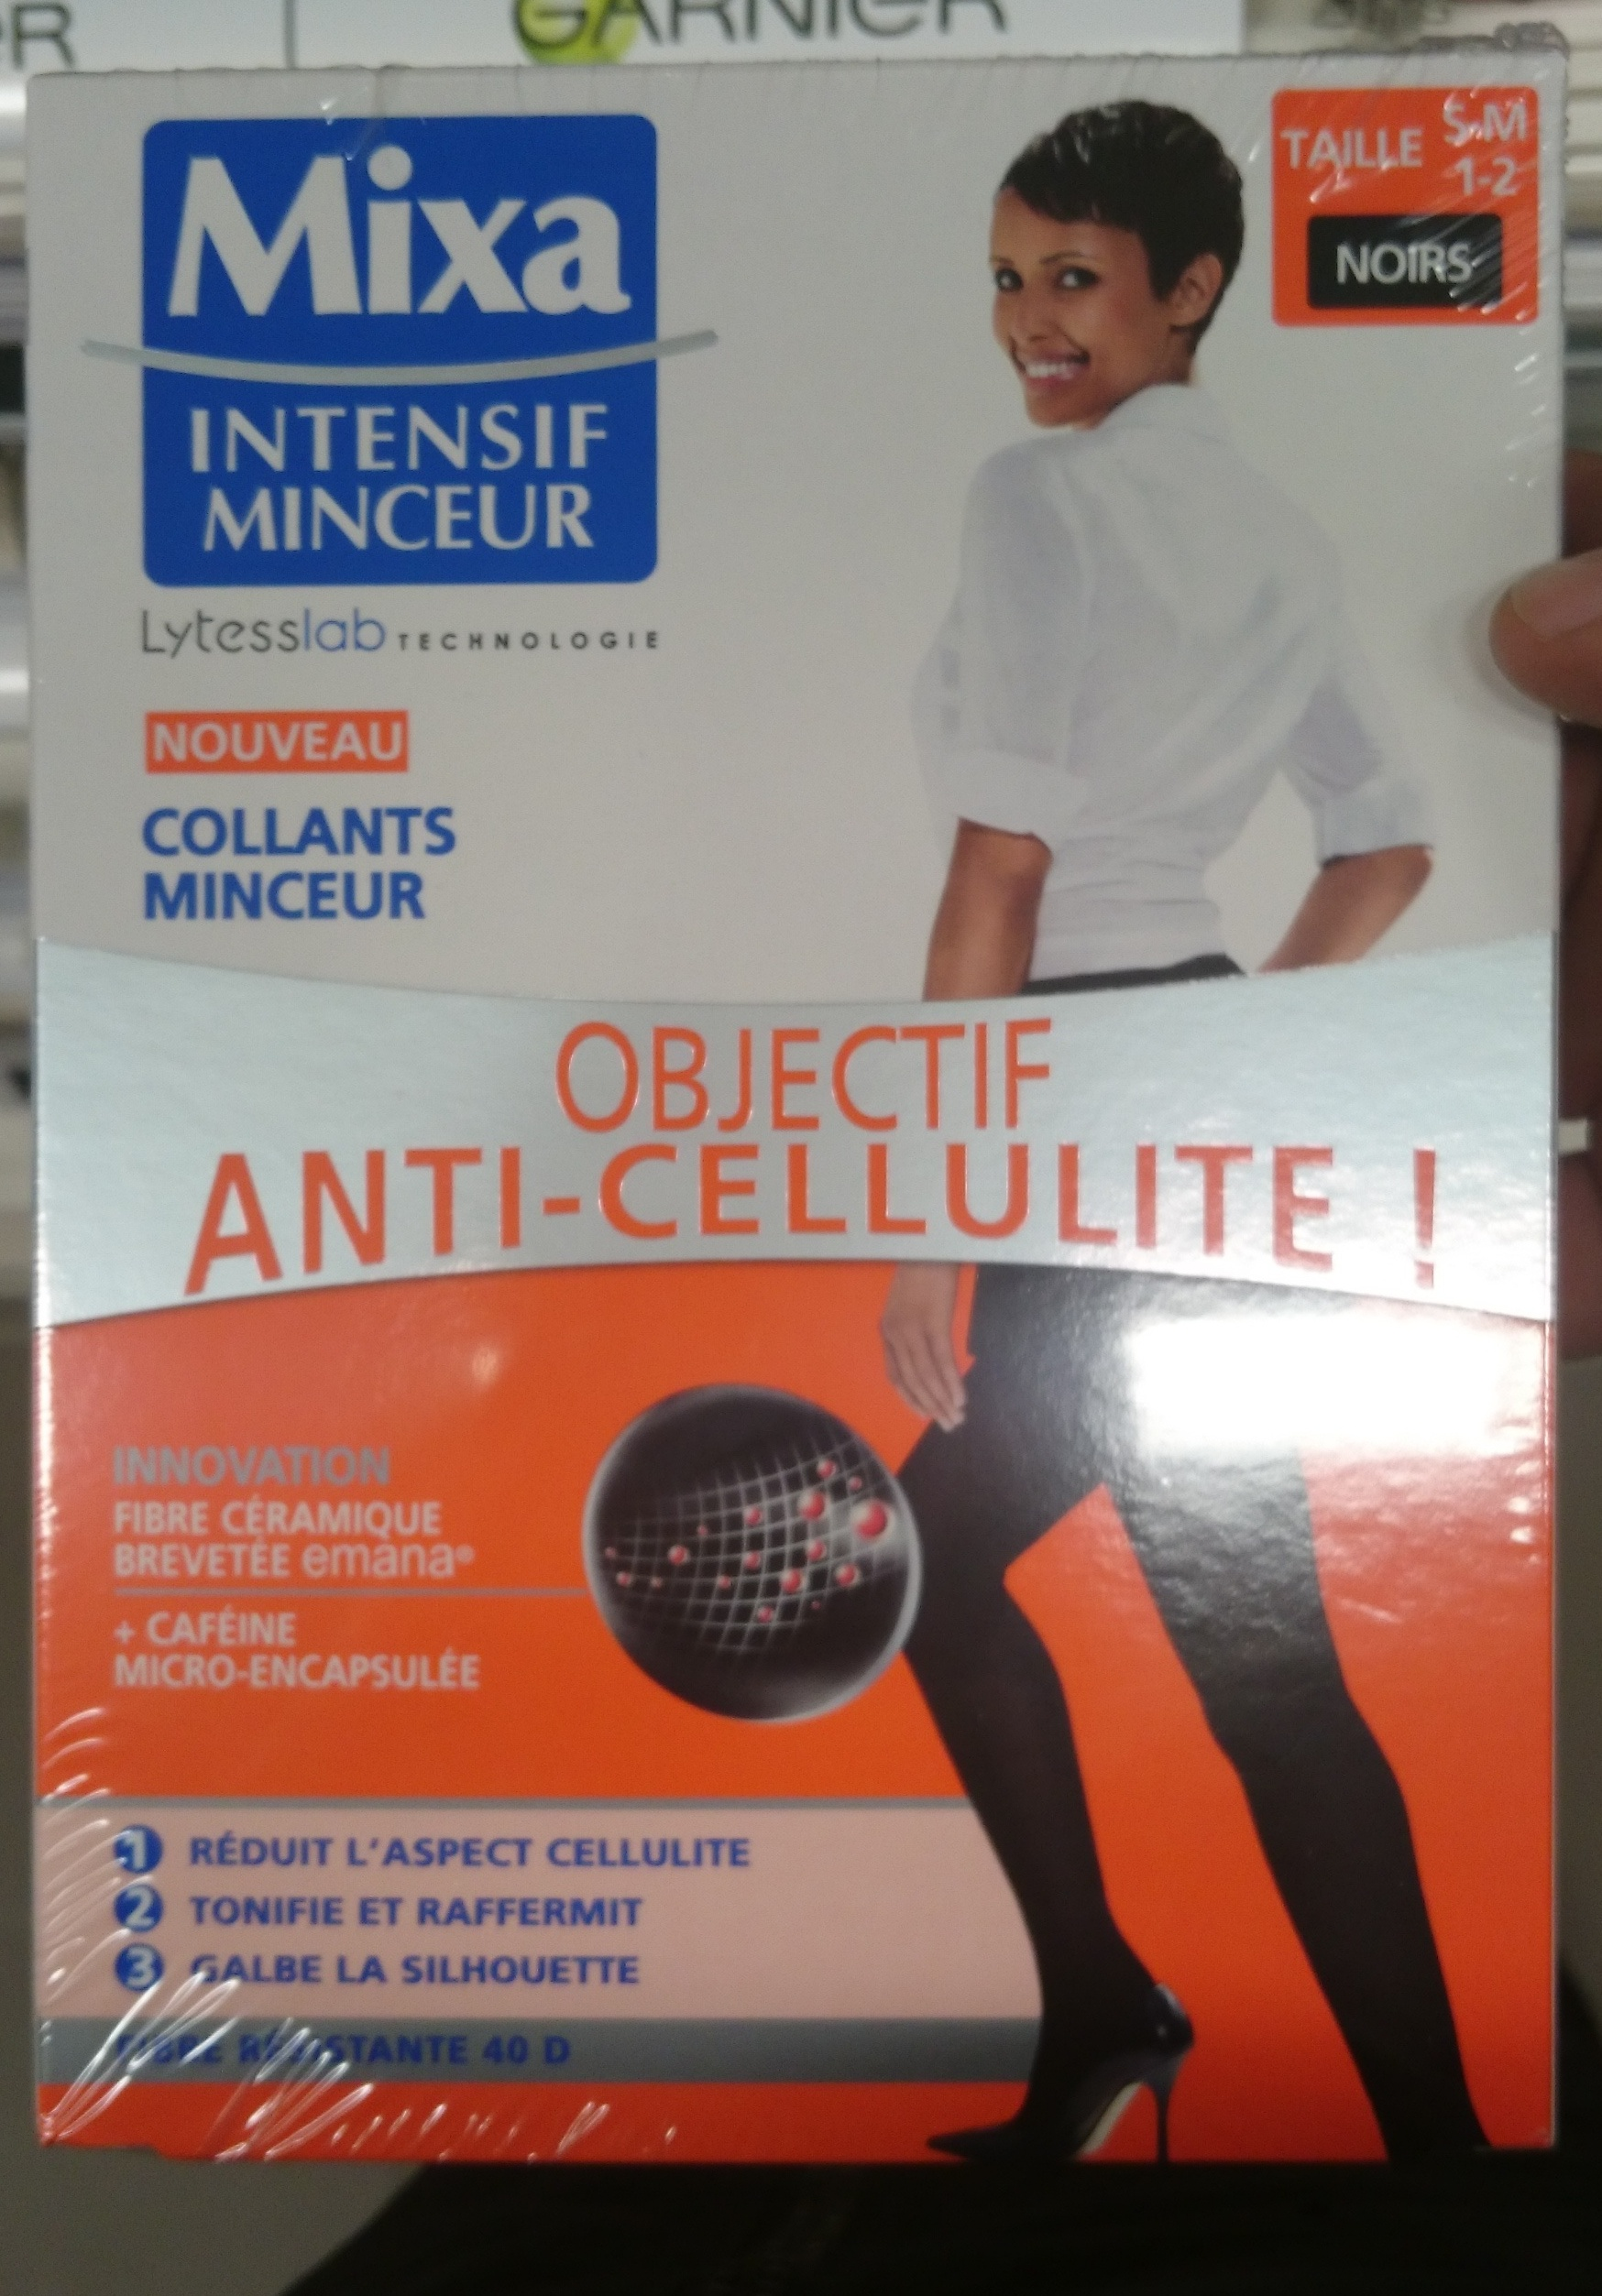 Collants minceur Objectif Anti-Cellulite ! - Product - fr